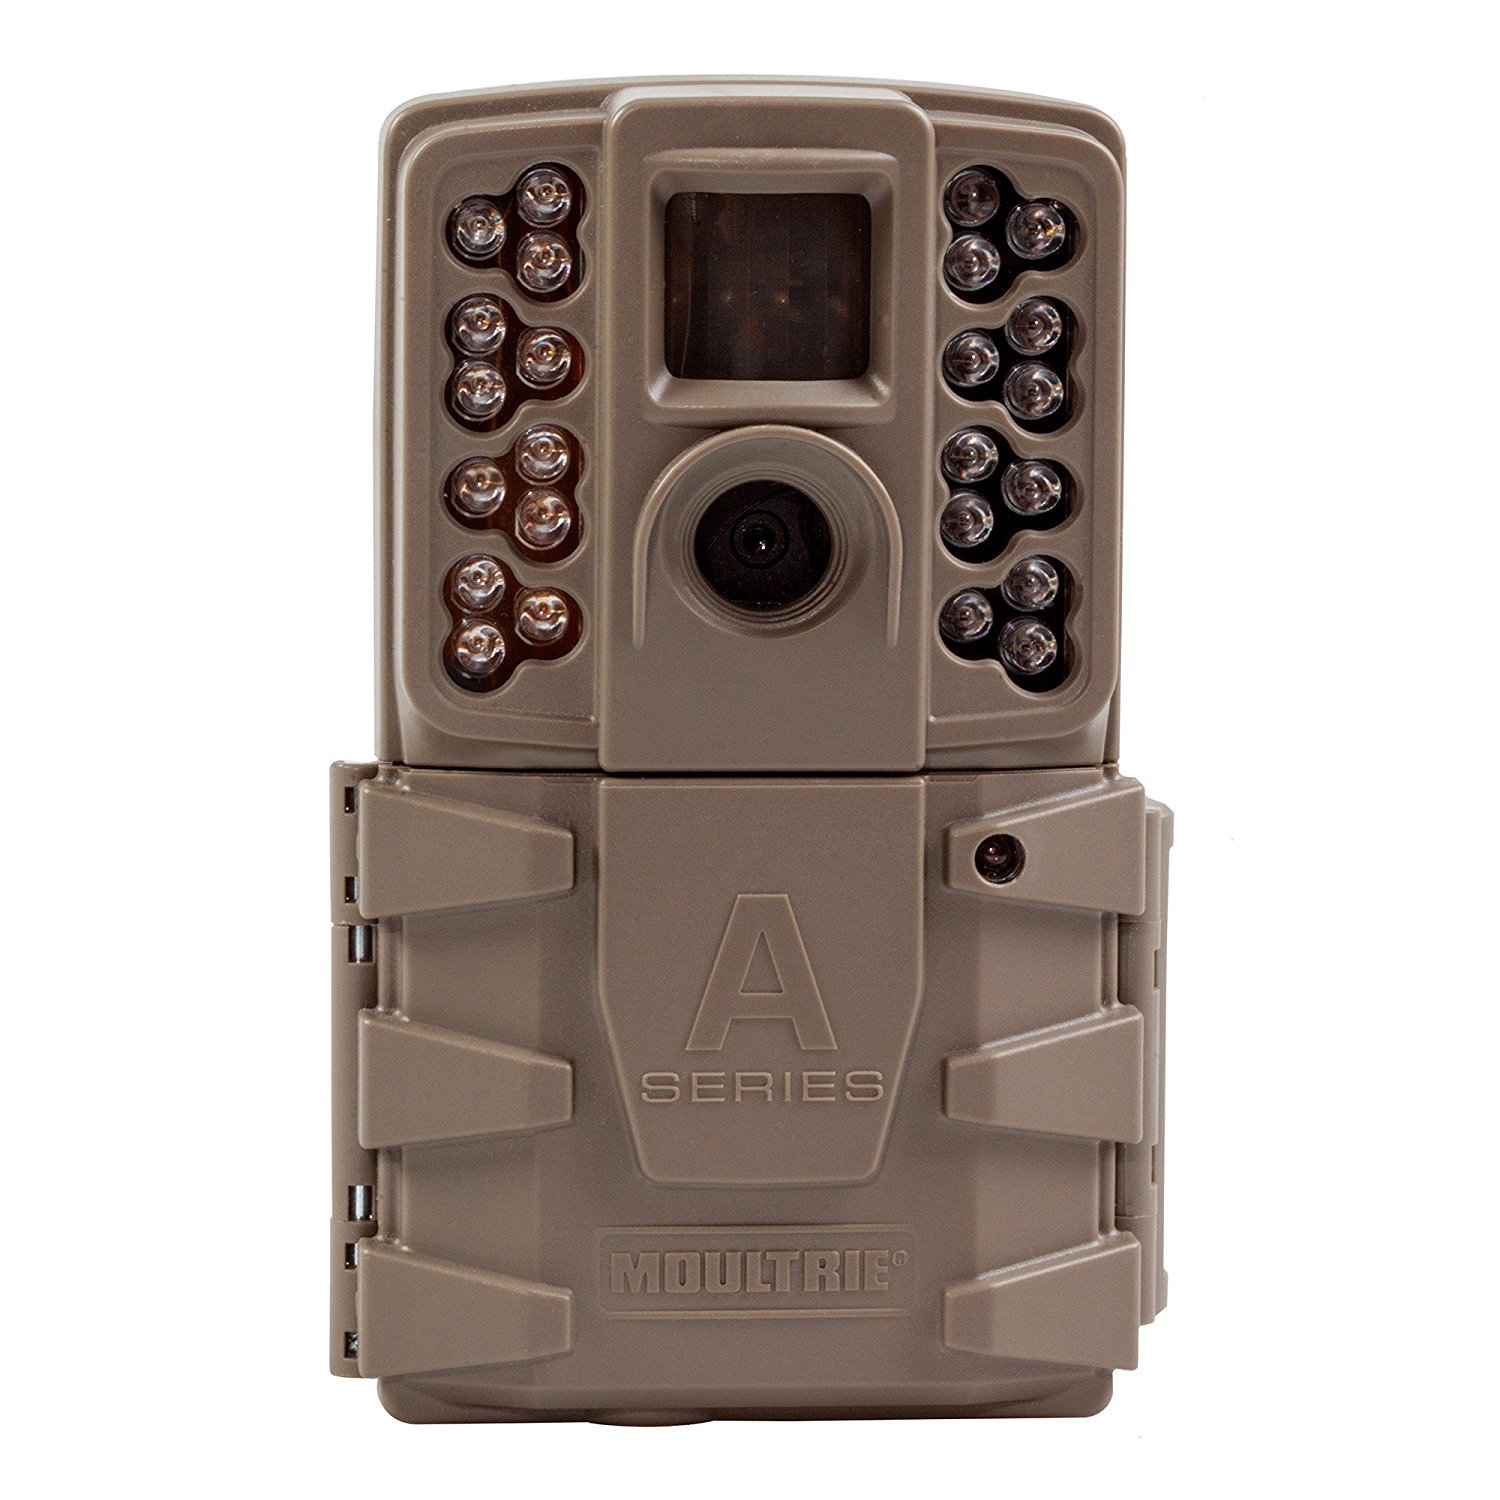 Moultrie 2017 Game Camera All Purpose Series 0.7s Trigger Speed Mobile Compatible